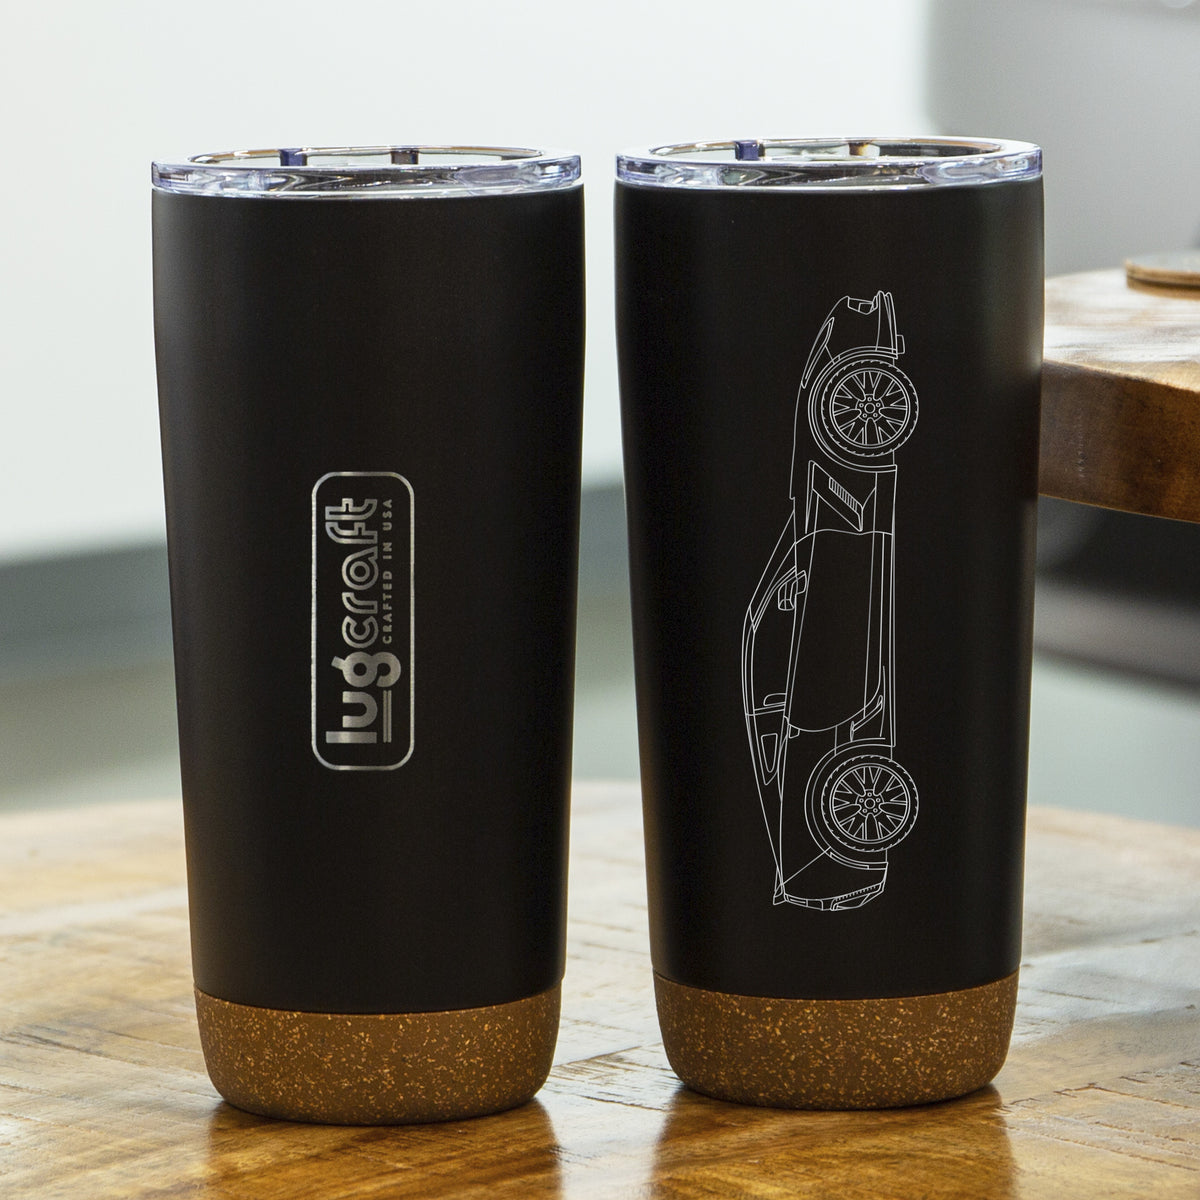 Chevy Corvette C7 Z06 Insulated Stainless Steel Coffee Tumbler - 20 oz